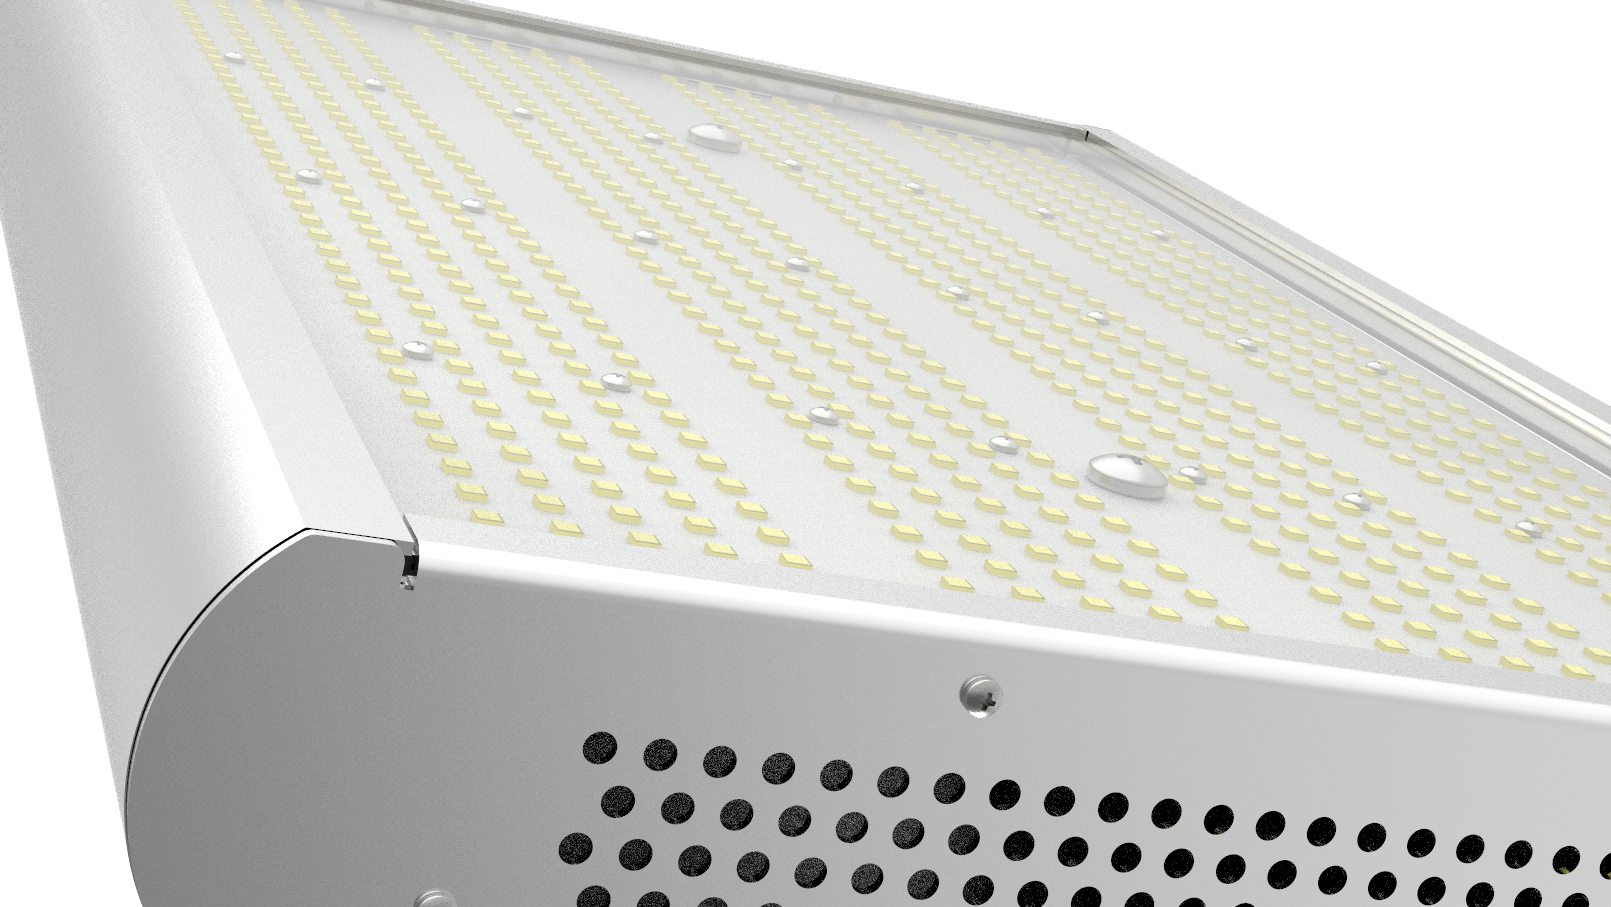 GL600 - 600W LED Grow Light Fixture